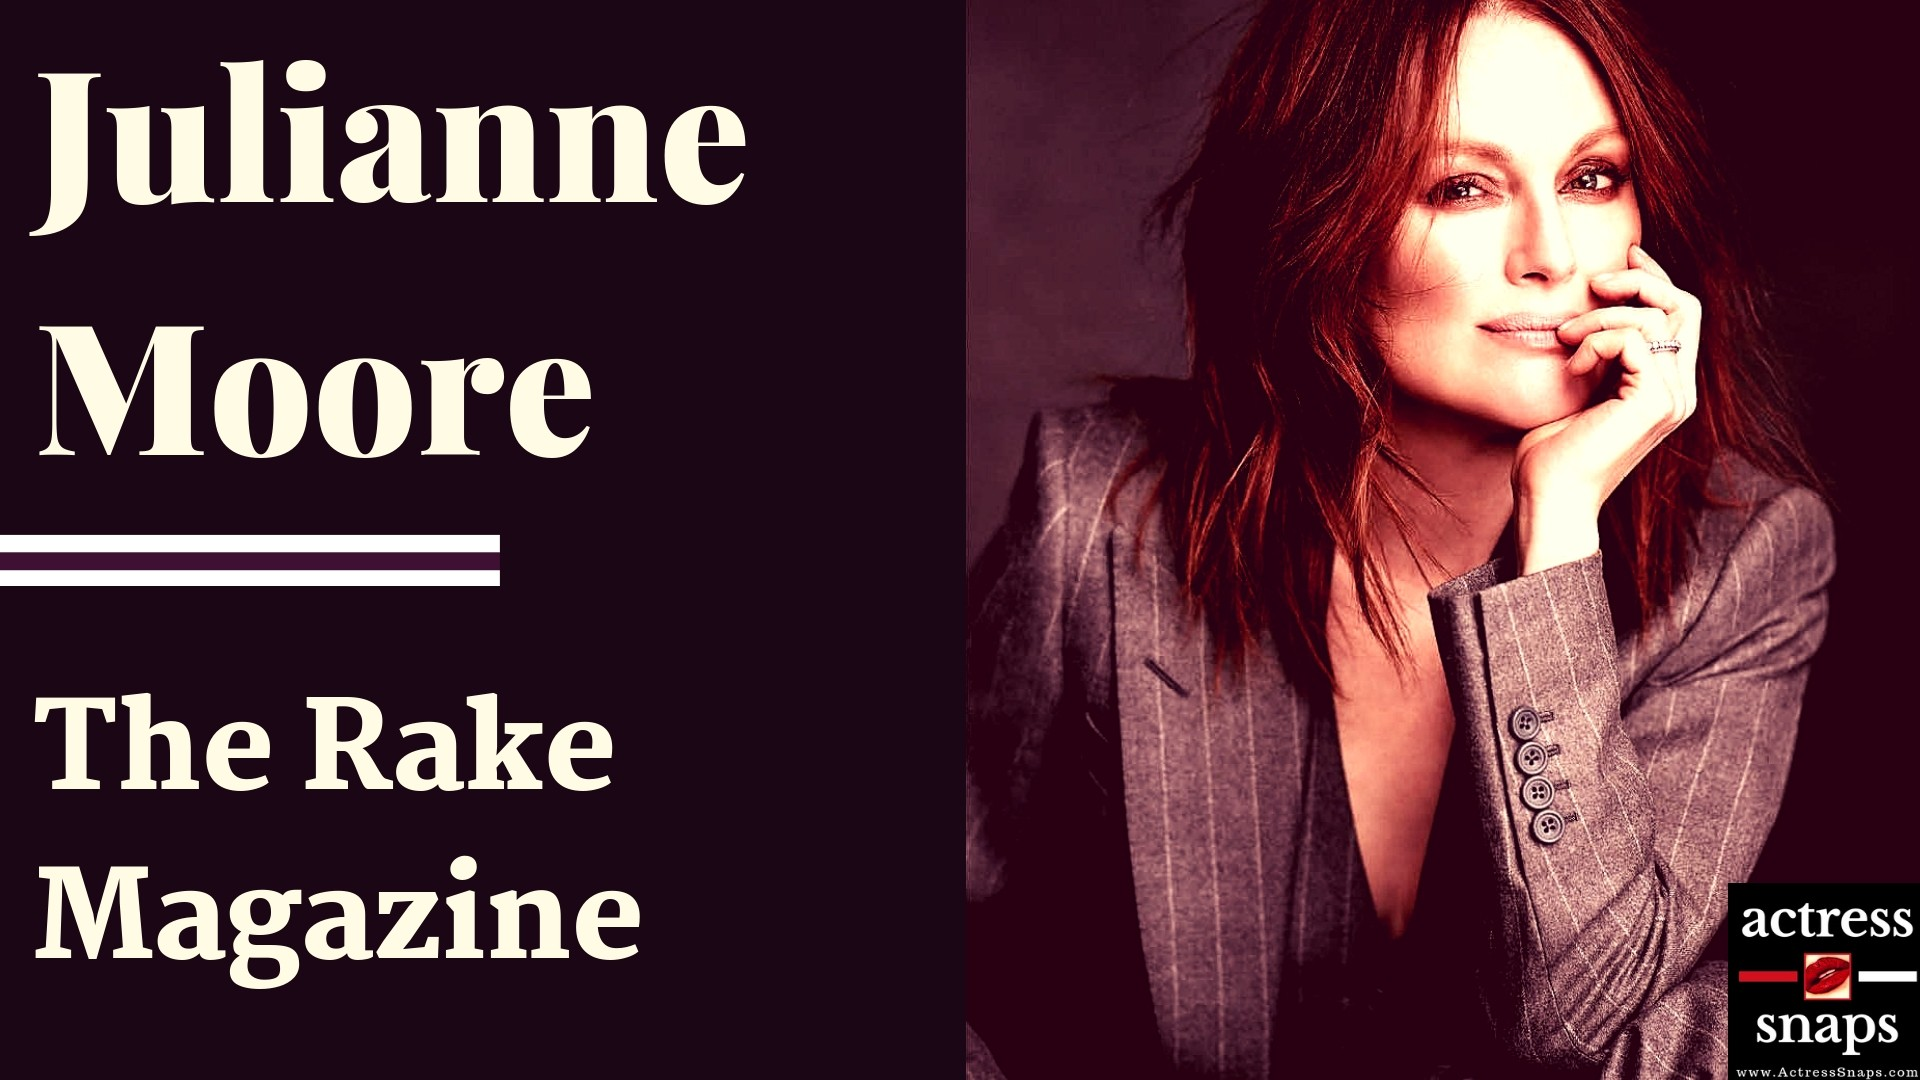 Julianne Moore - The Rake Magazine Photos - Sexy Actress Pictures | Hot Actress Pictures - ActressSnaps.com